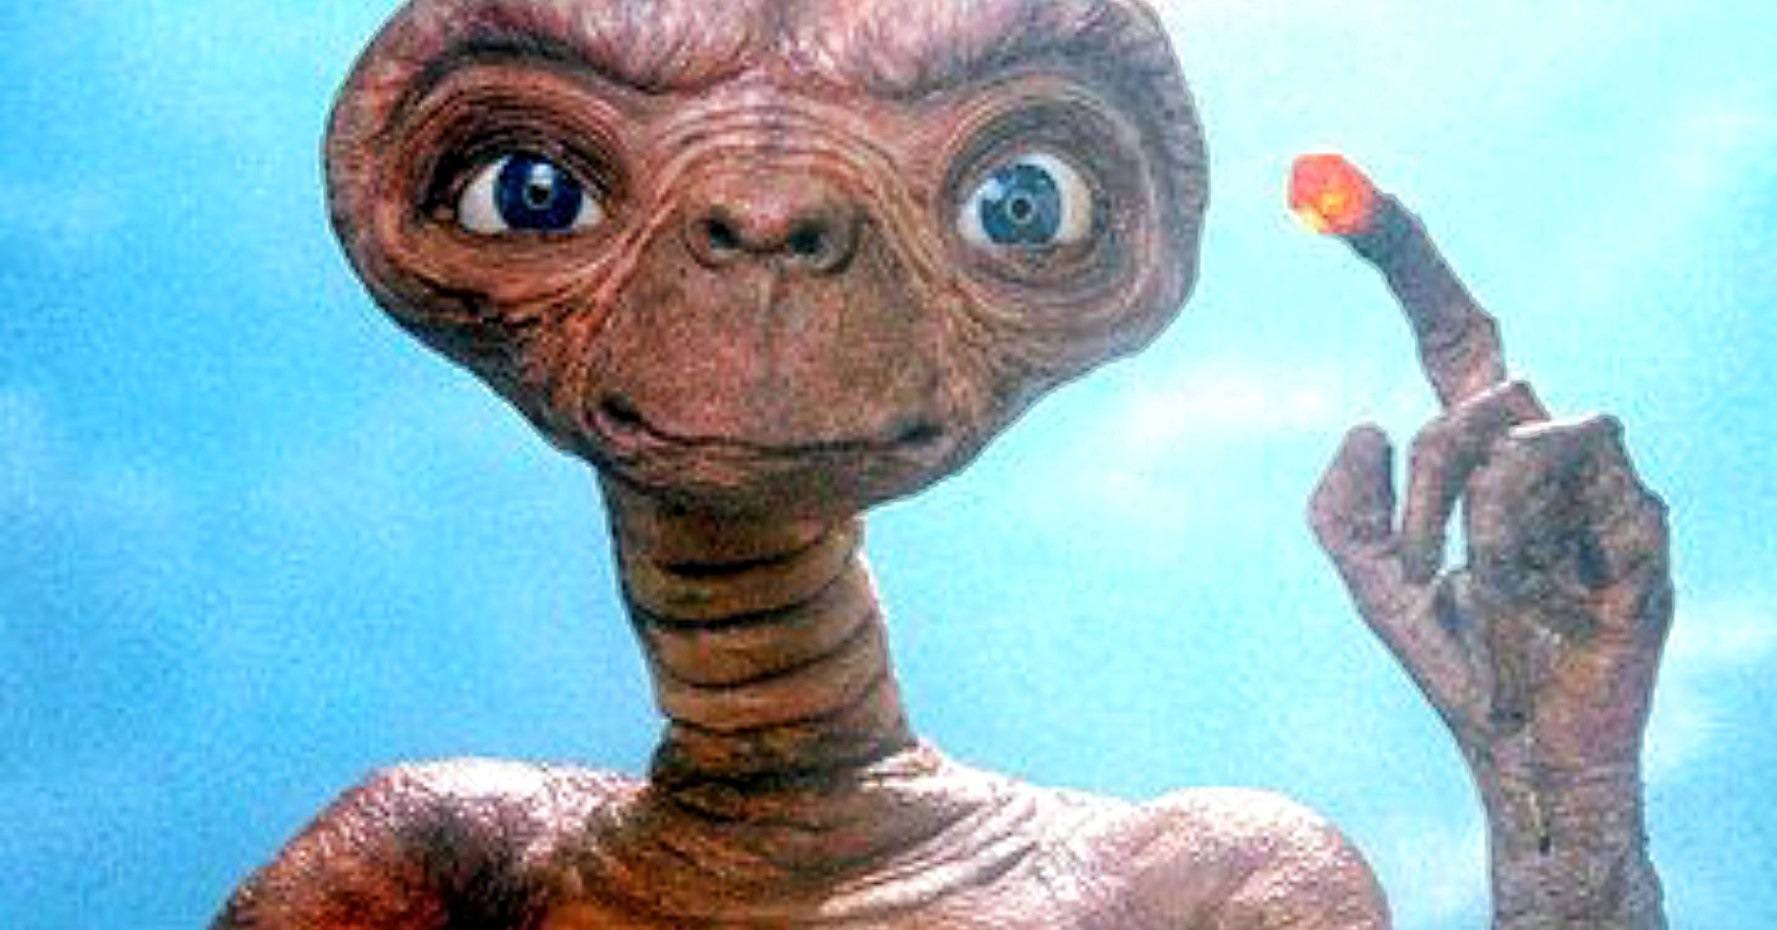 E.T. The Extra Terrestrial Spielberg movie